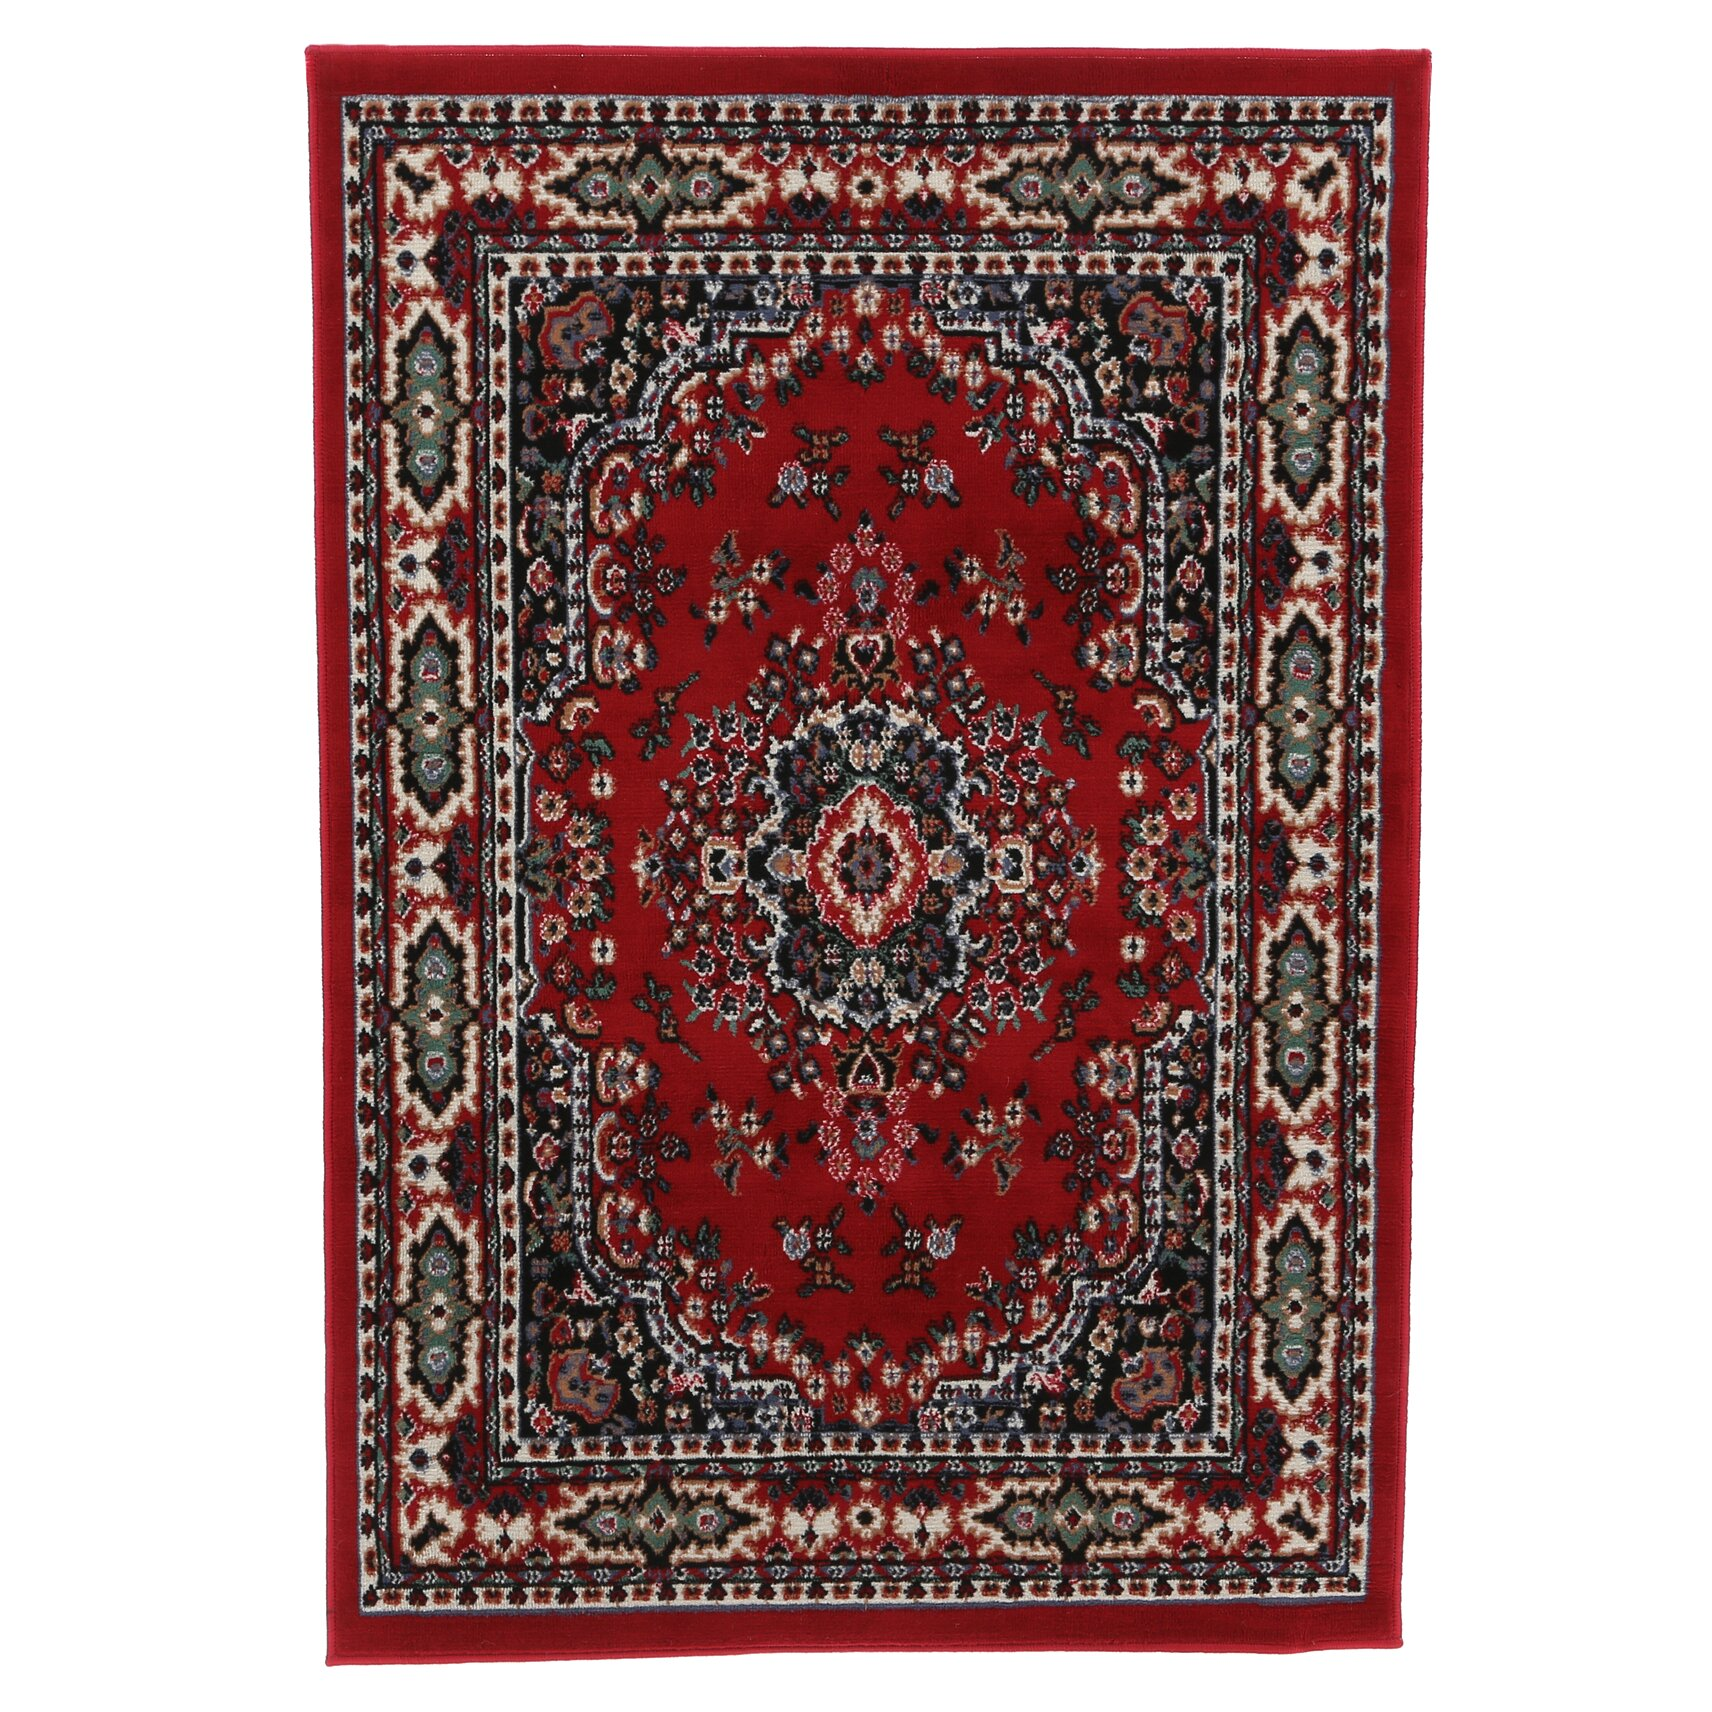 Foyer Rugs For Christmas: Home Dynamix Claret Area Rug & Reviews